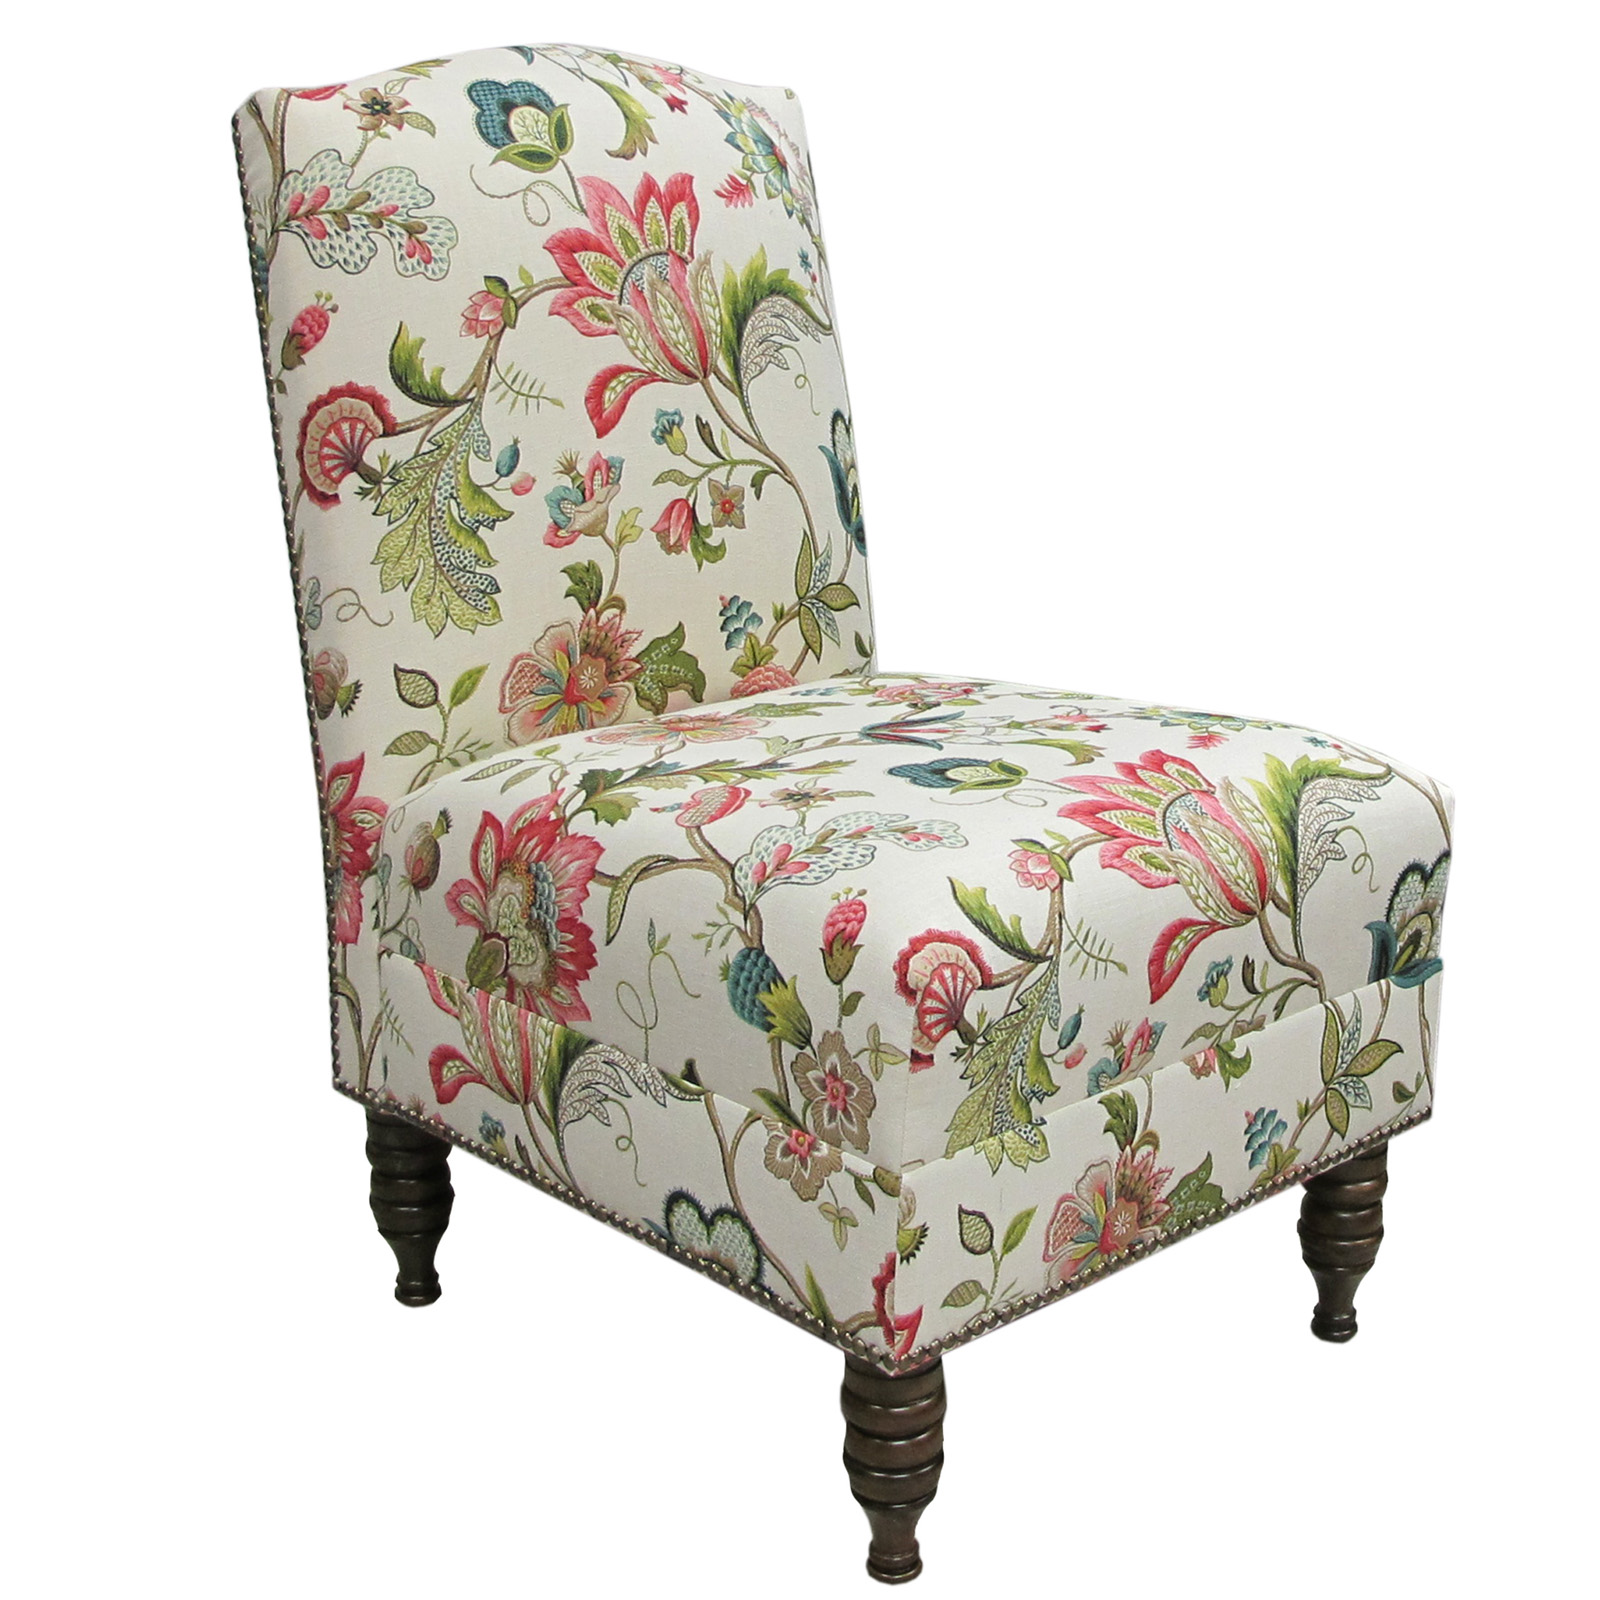 colorful accent chair cheap lift chairs brissac jewel armless nail button at